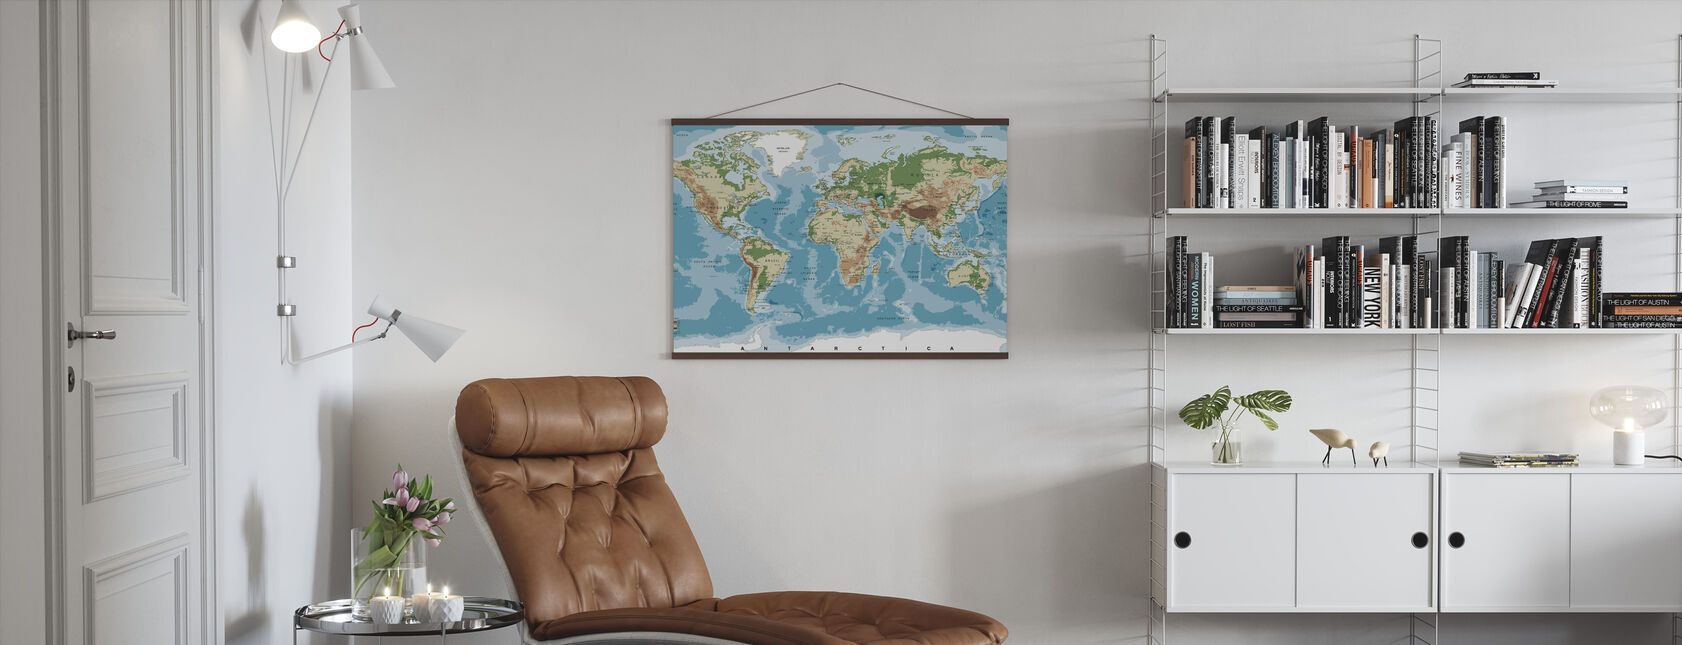 World Map with Elevation Tints - Poster - Living Room